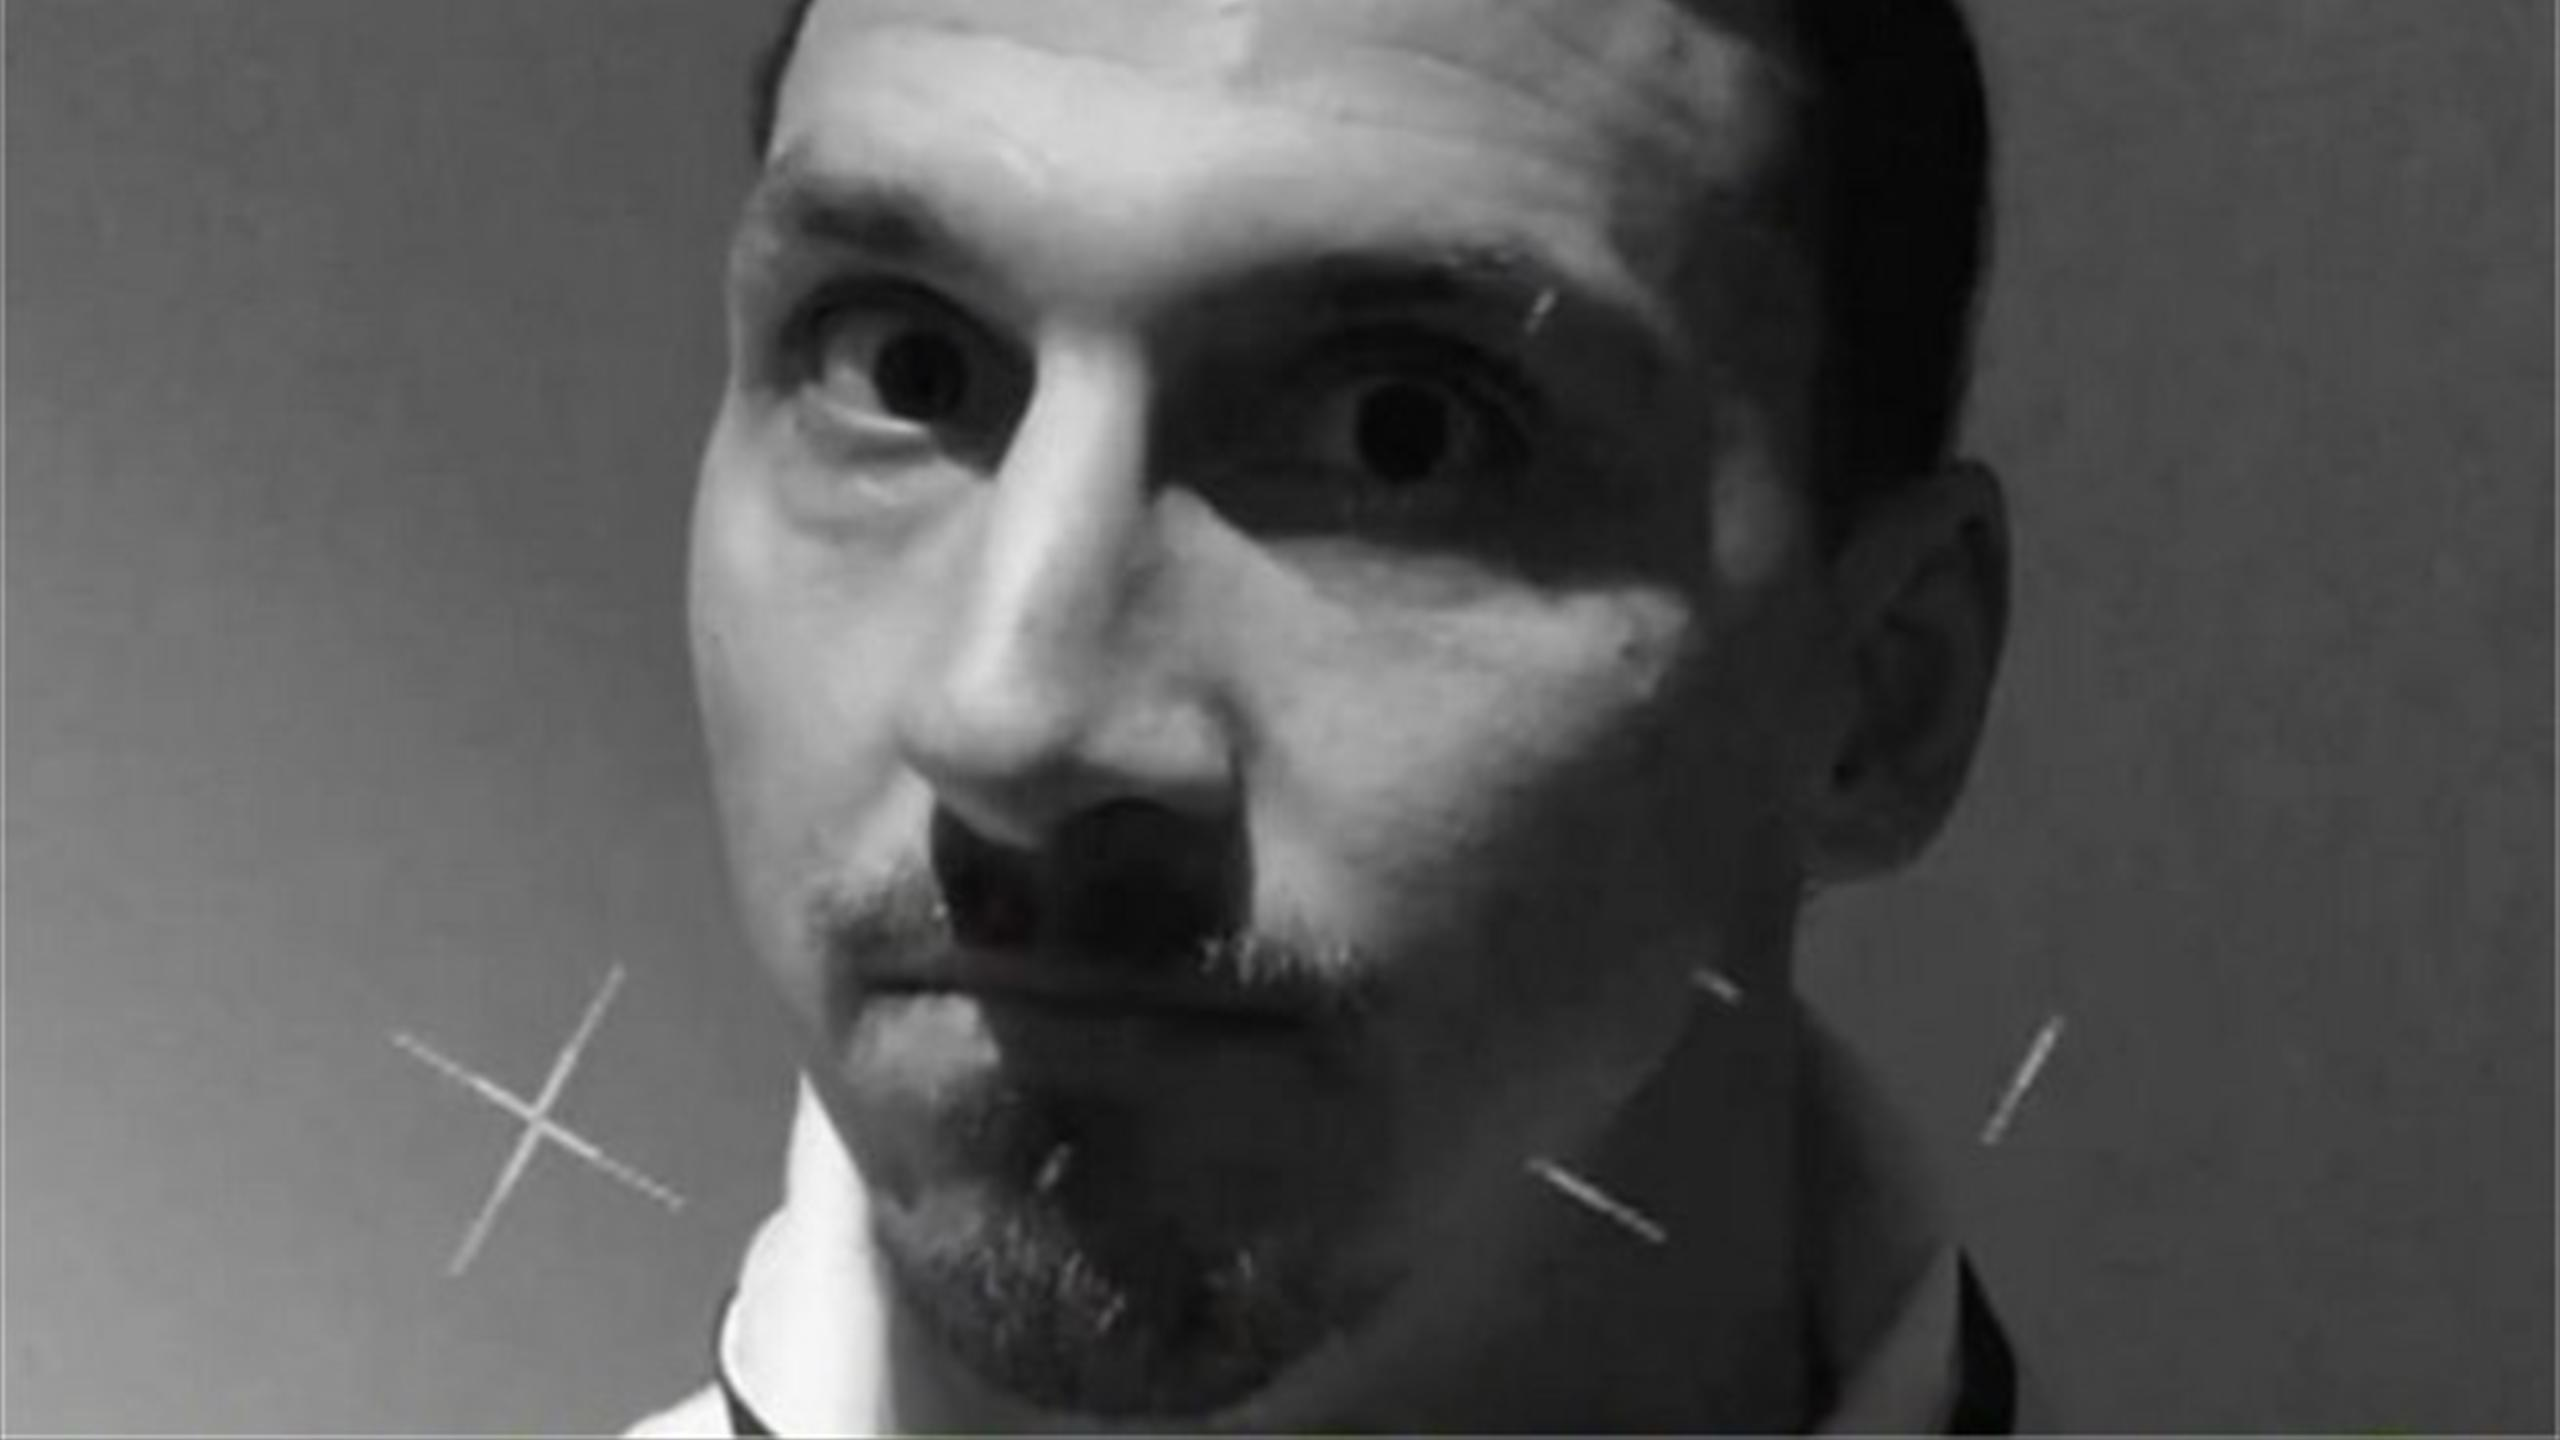 Zlatan Ibrahimovic on Manchester United's Instagram page